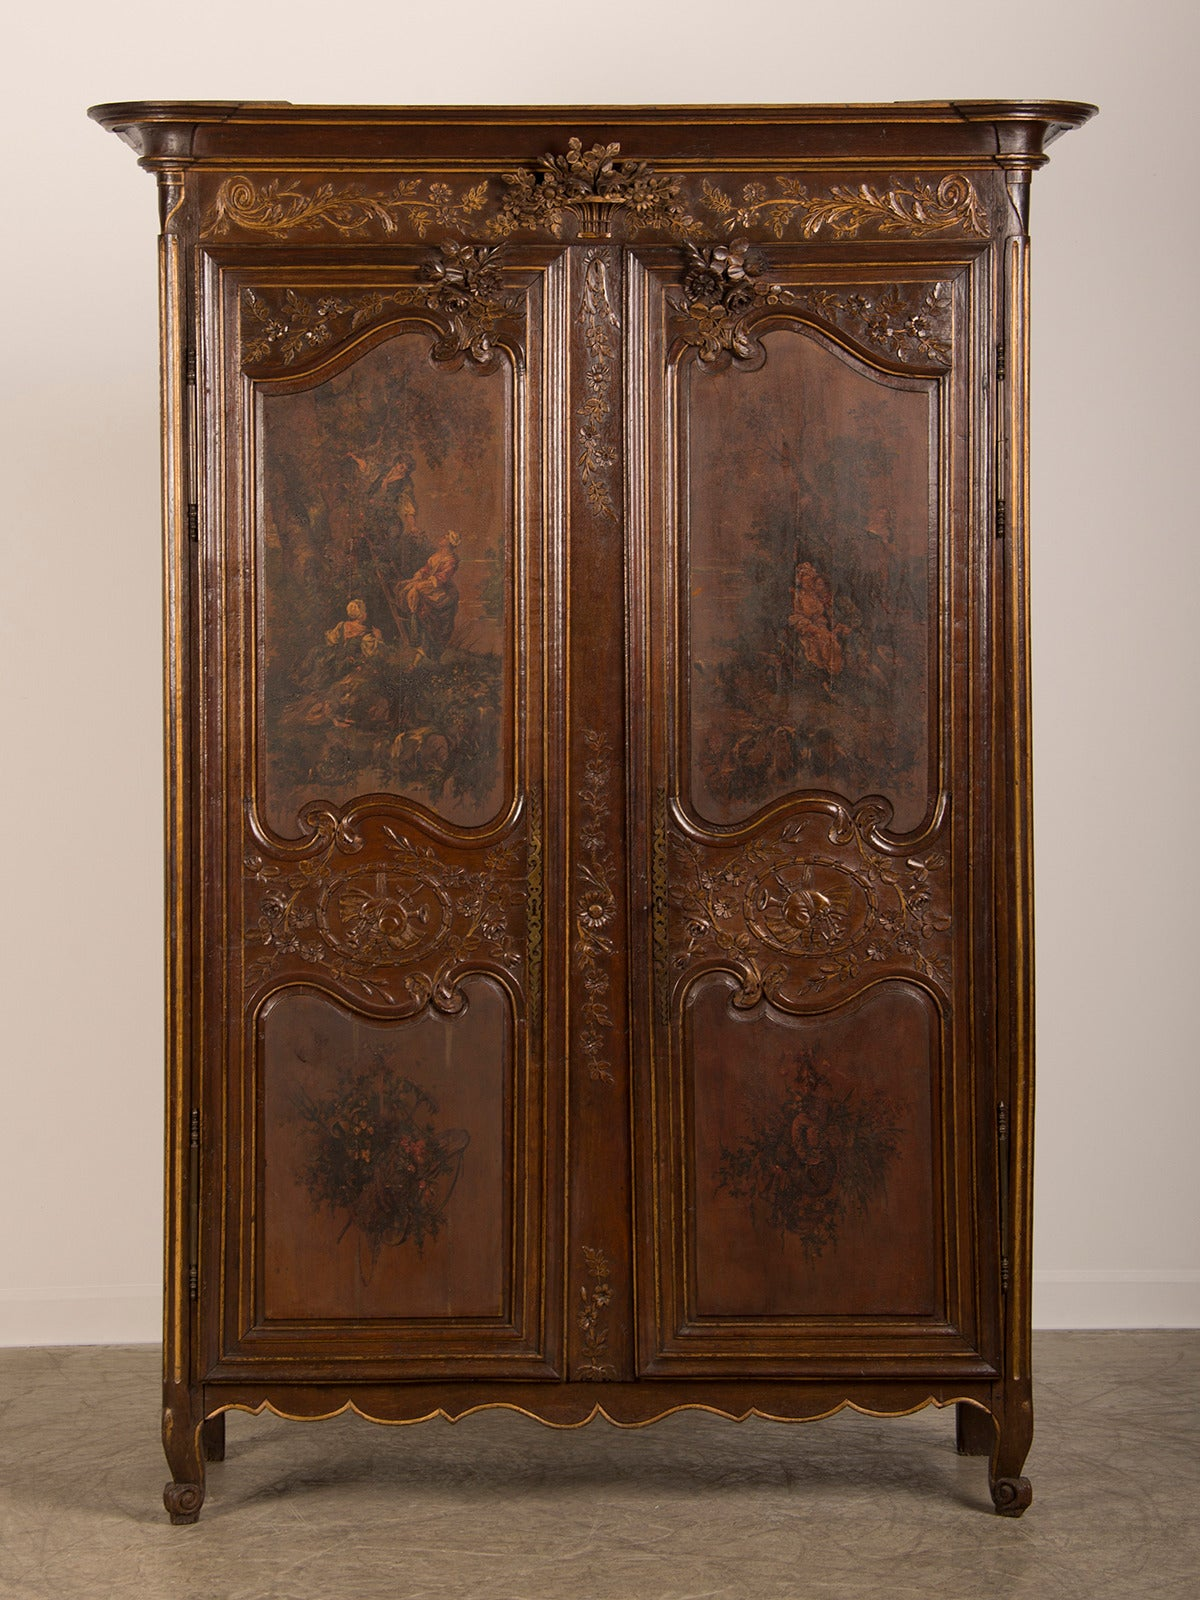 louis xv louis xvi marriage armoire original painted. Black Bedroom Furniture Sets. Home Design Ideas